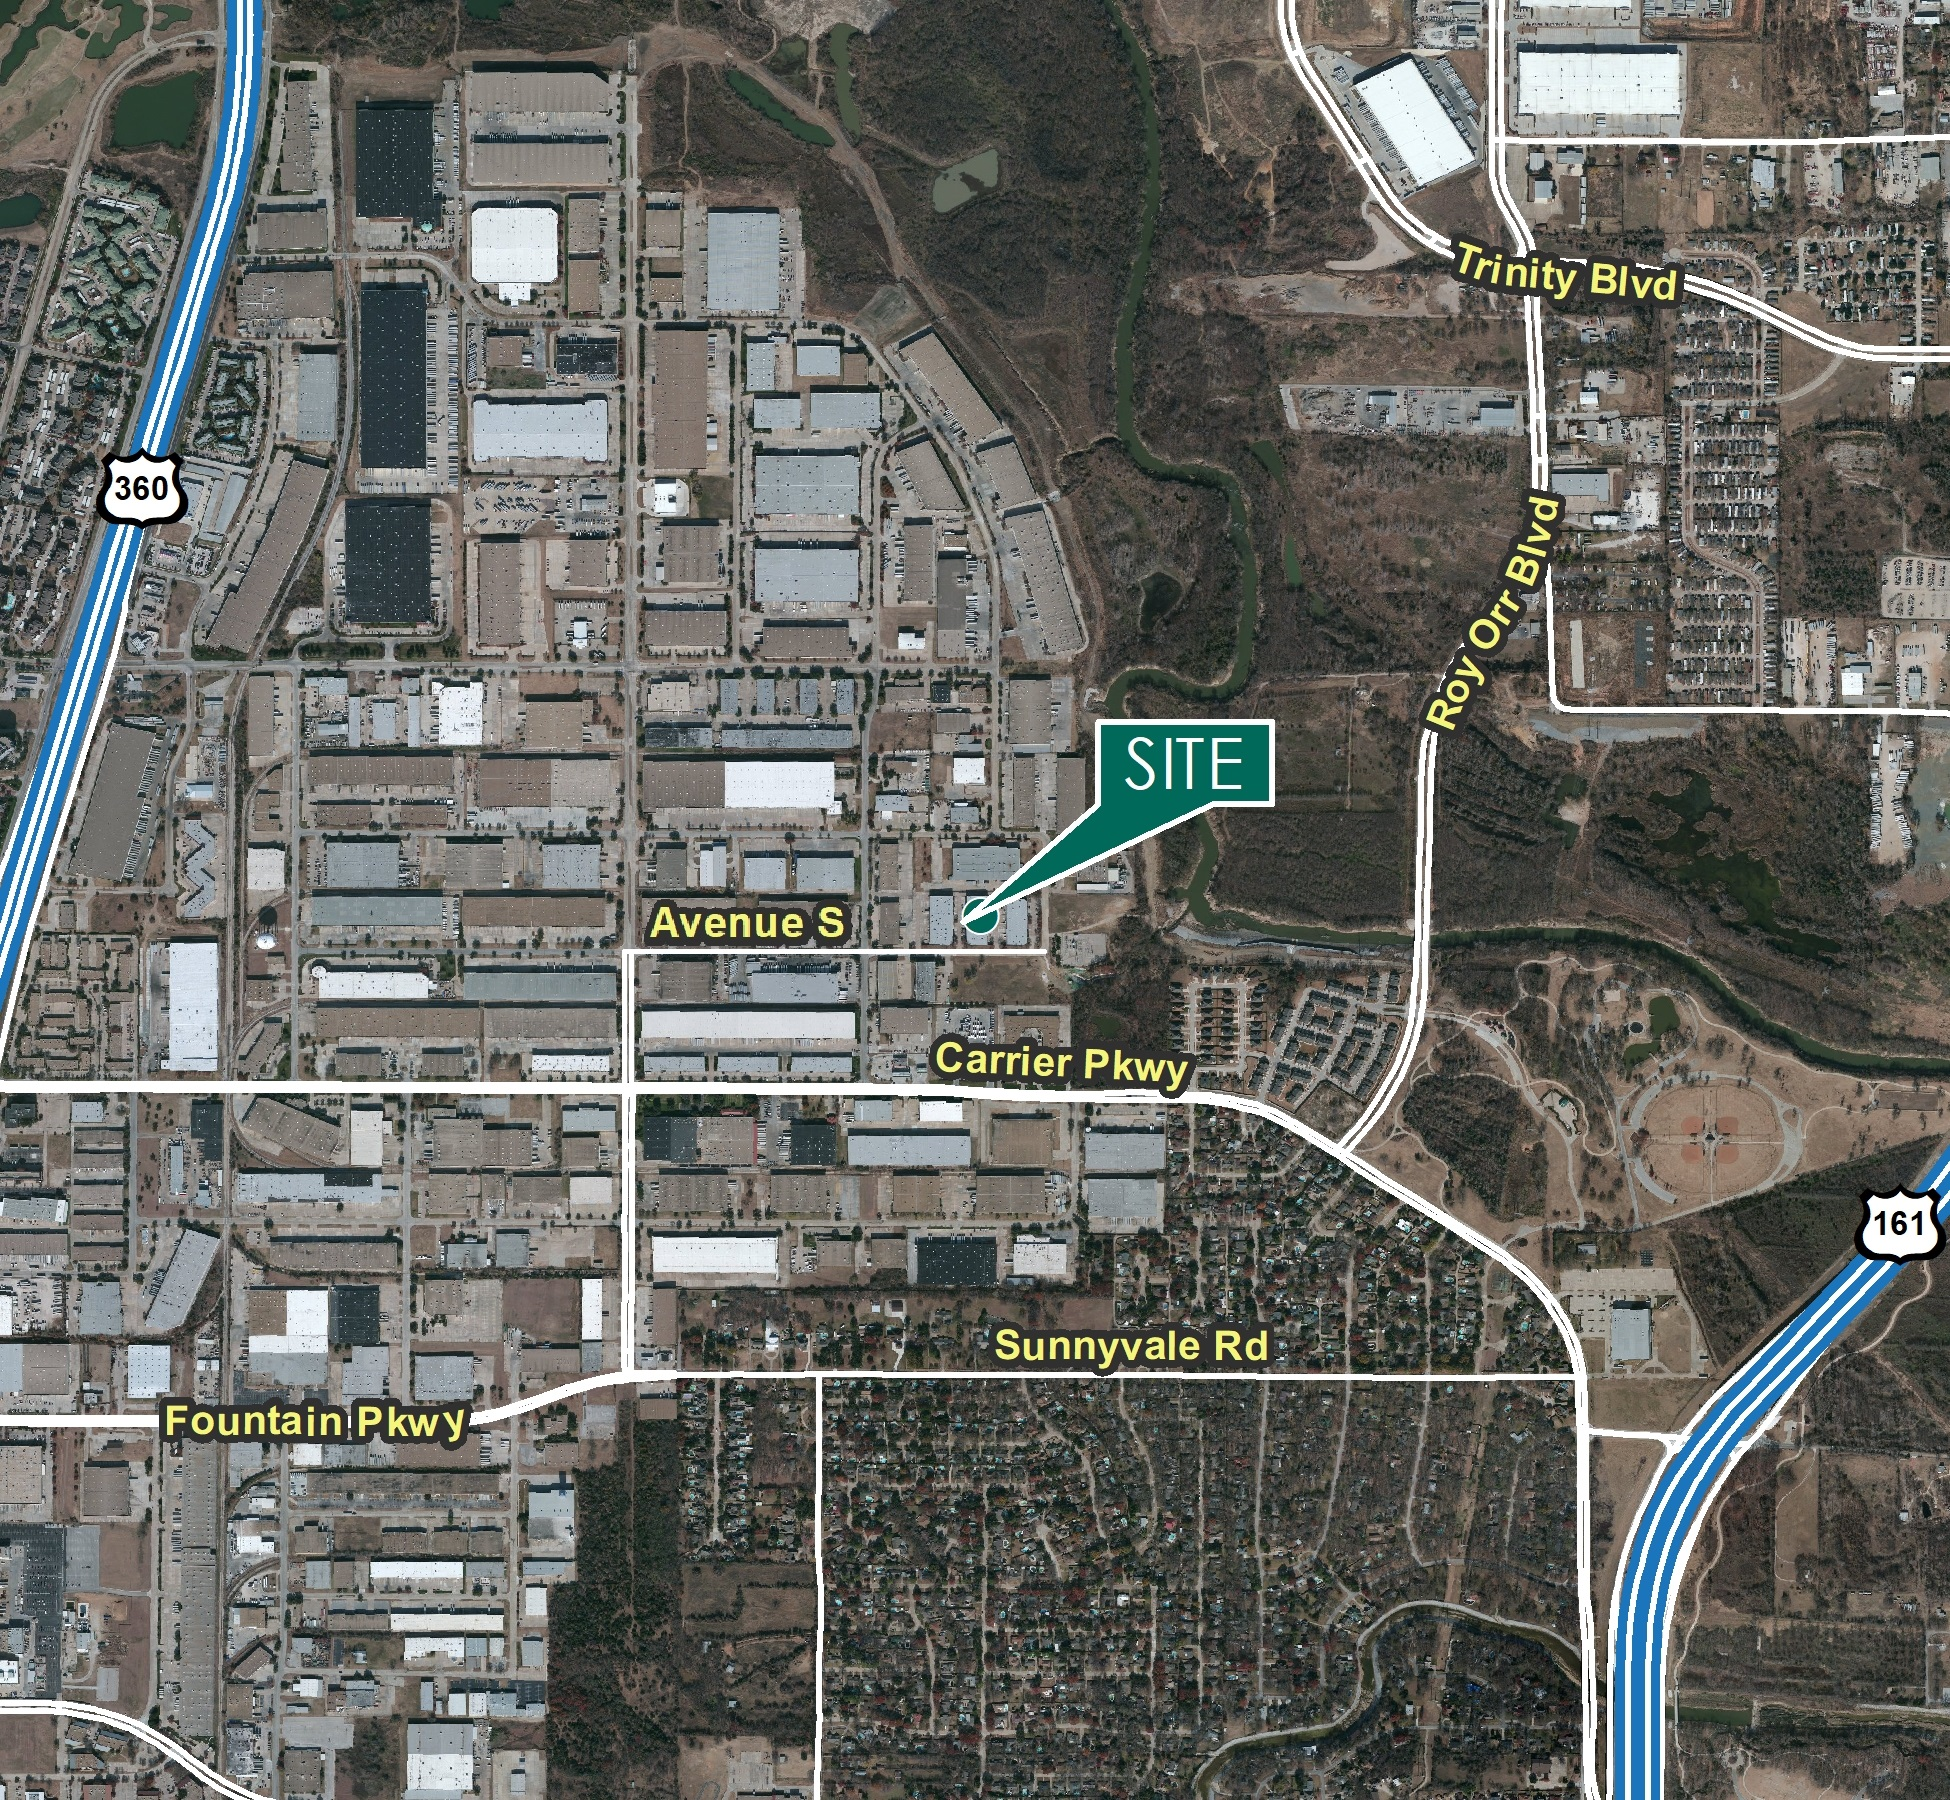 Prologis-Great-Southwest-73-DAL01773-1515-Avenue-S_AerialMap.jpg